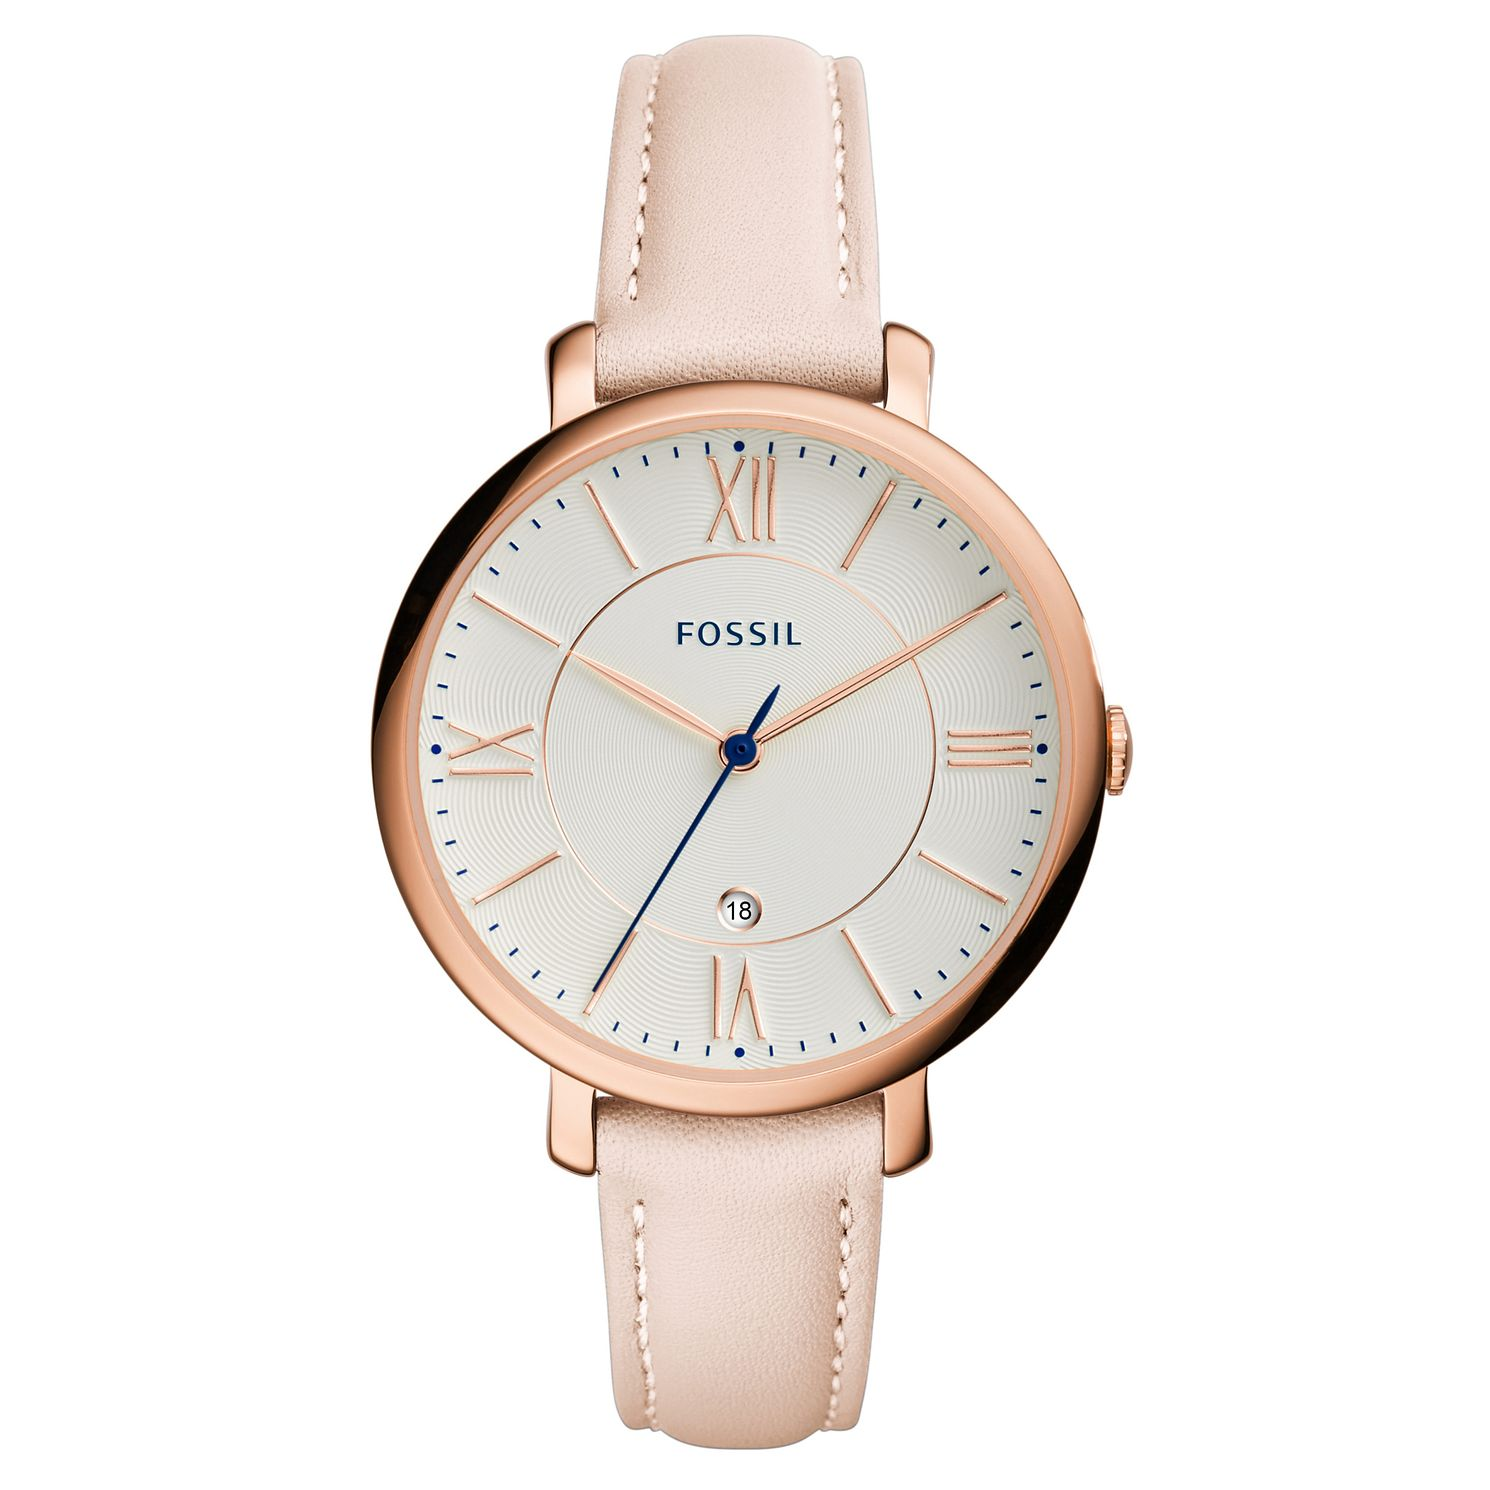 Fossil Ladies' Light Pink Leather Strap Watch - Product number 5065682